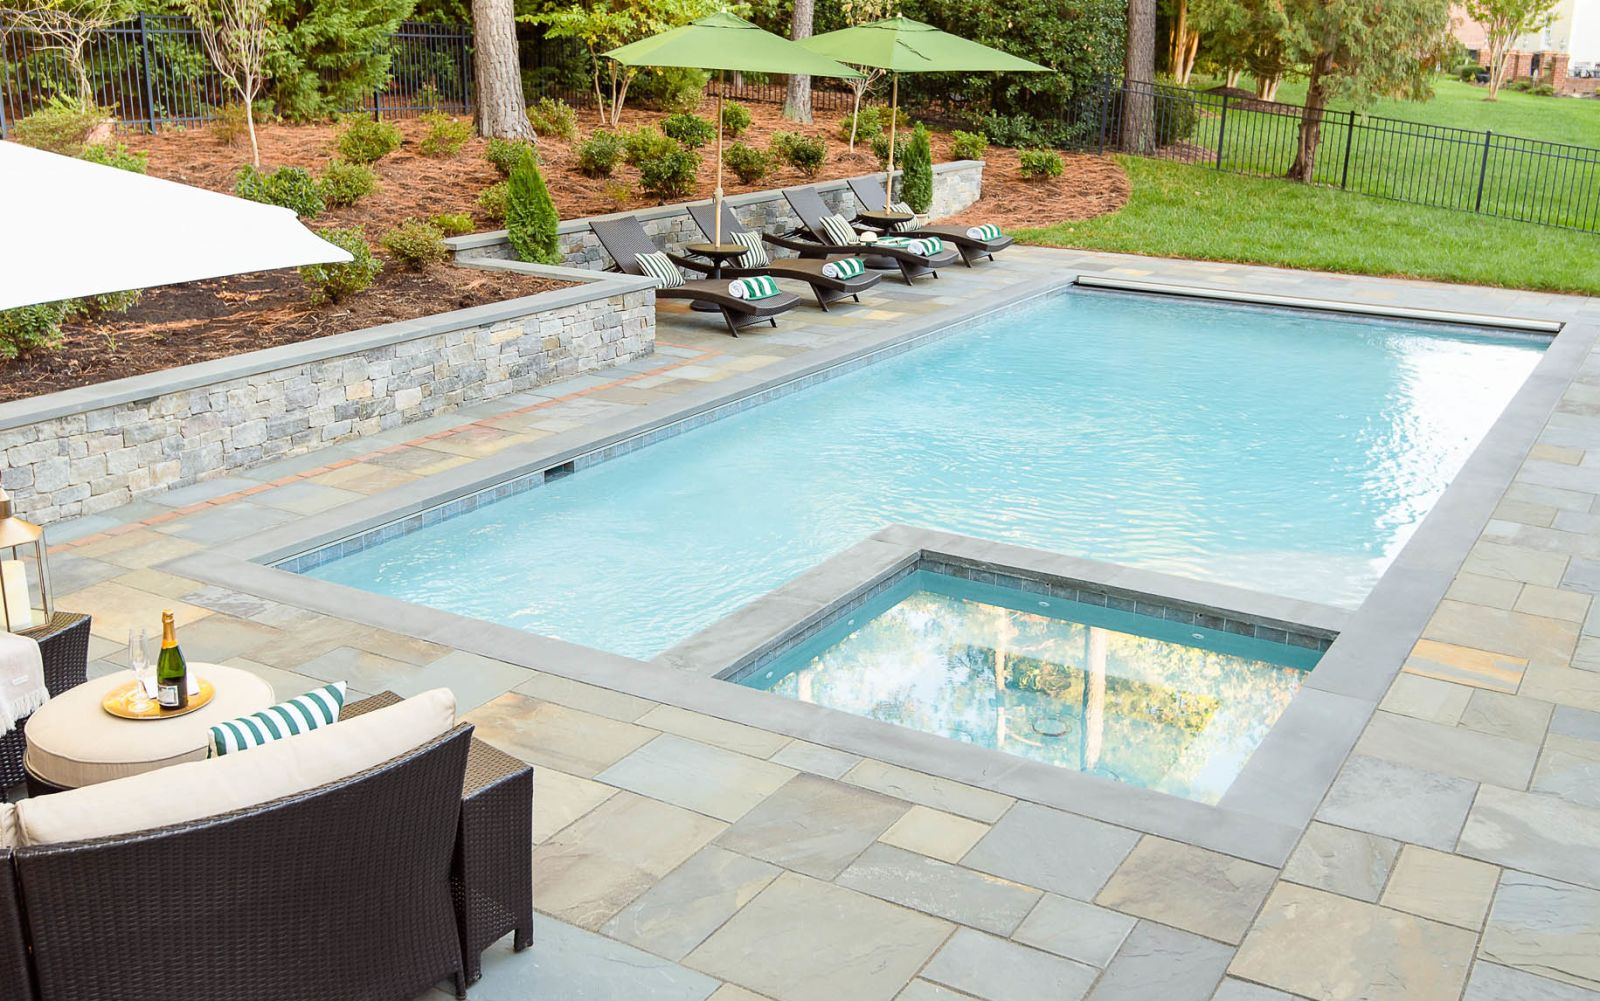 lounge chairs sit alongside the underground pool installed in the backyard with a stone retaining wall separating them from the pine trees